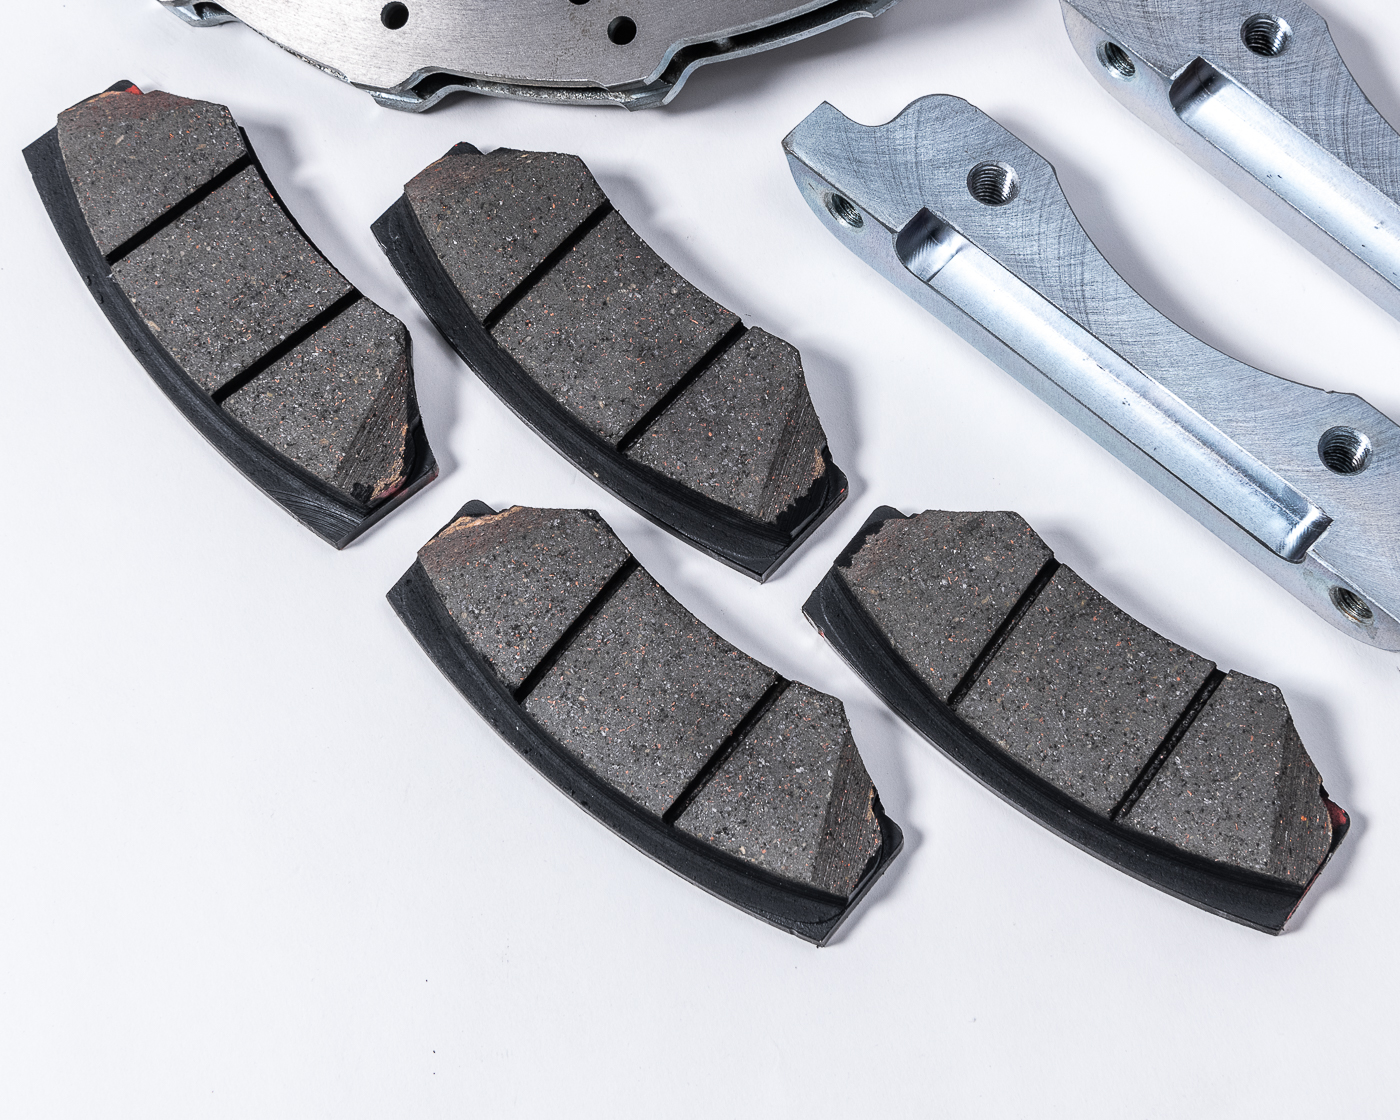 WP Pro Carbon Metallic Street Brake Pads for Can-Am X3 Big Brake Kit - WP-BRP-X3-450